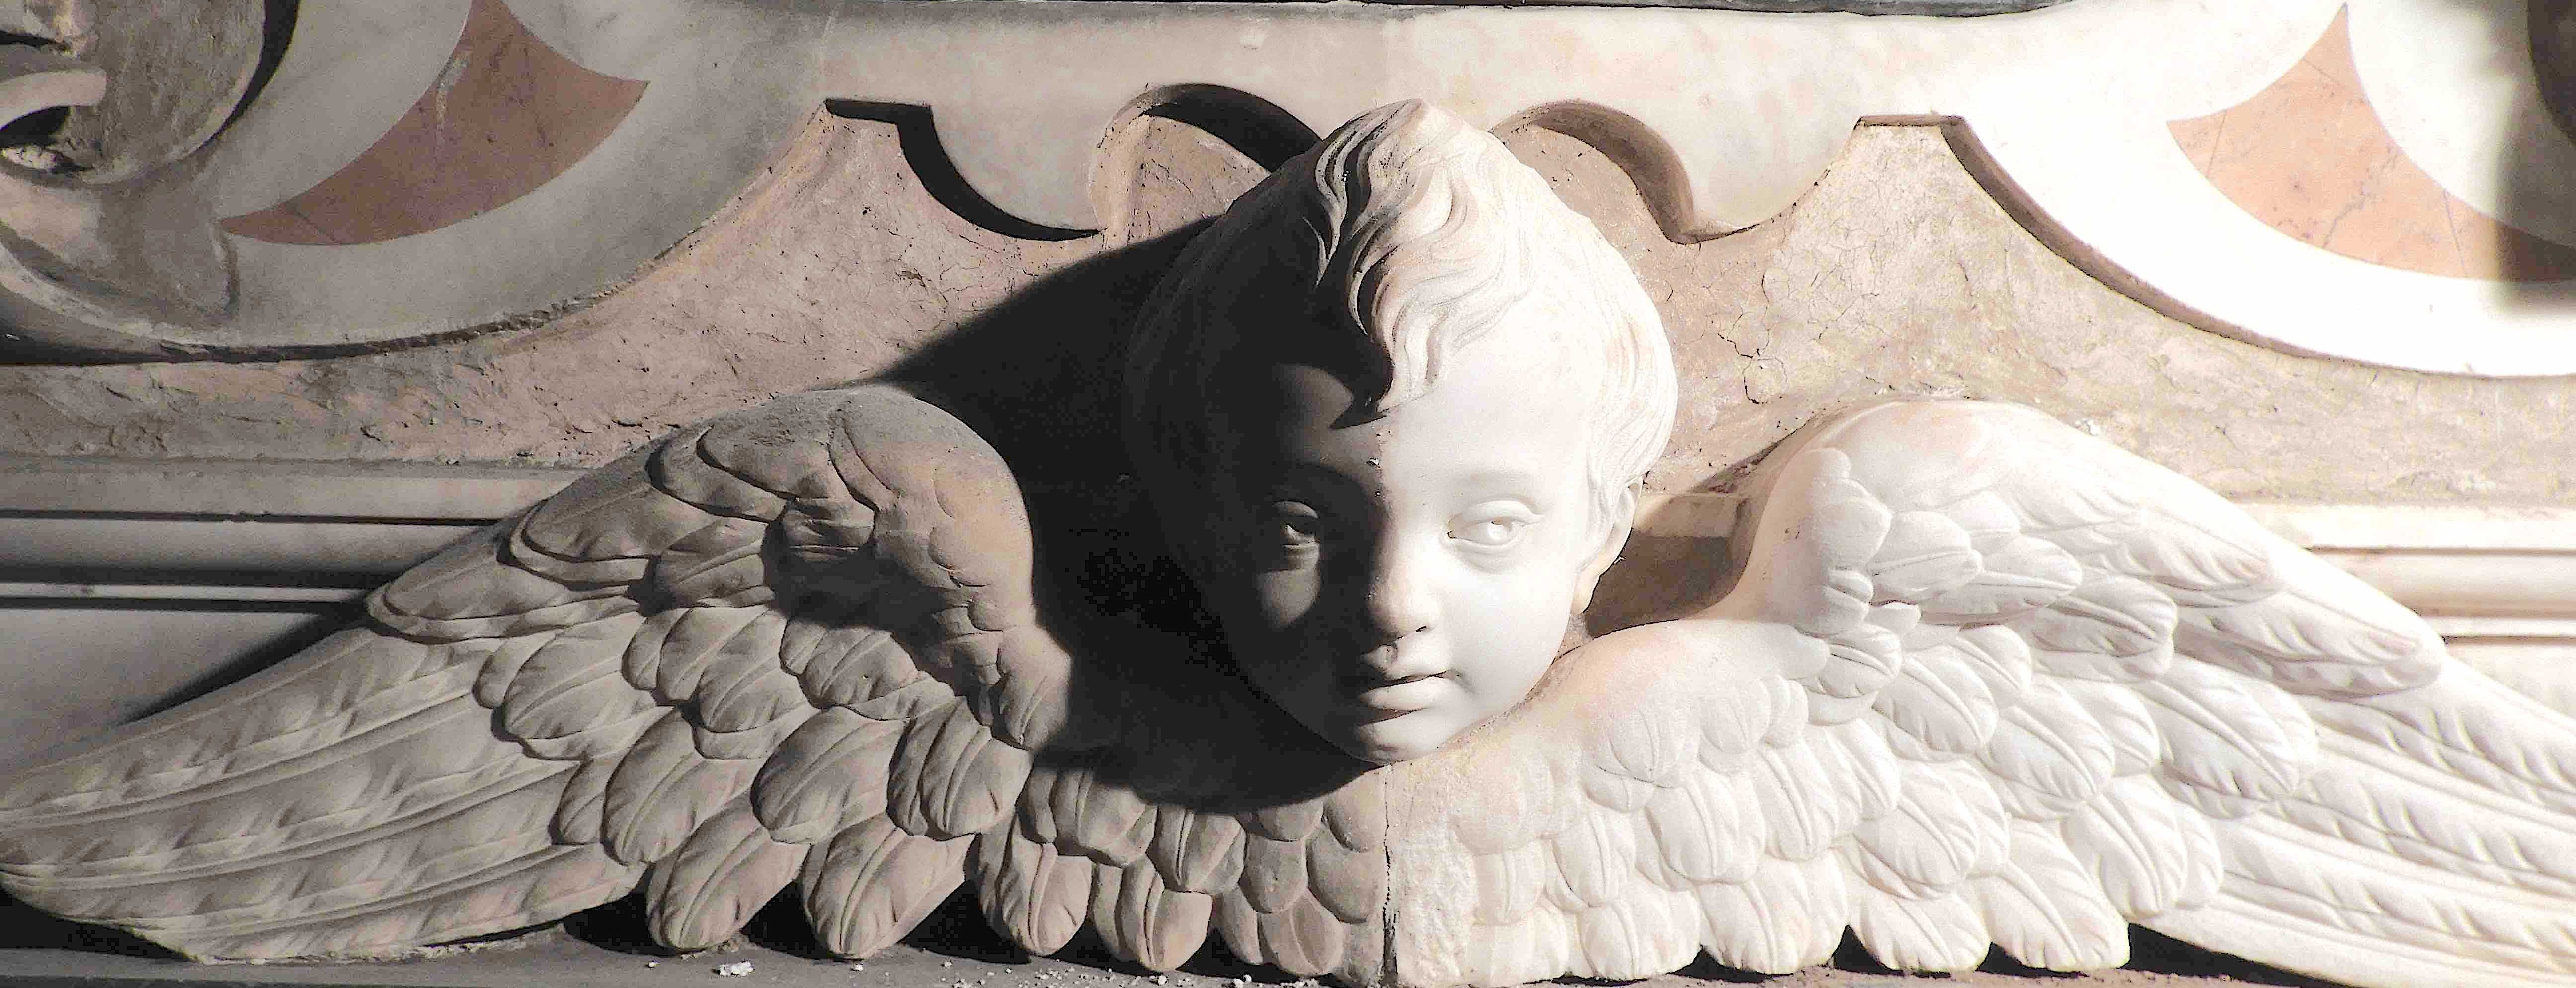 Marble Winged Infant Half Cleaned